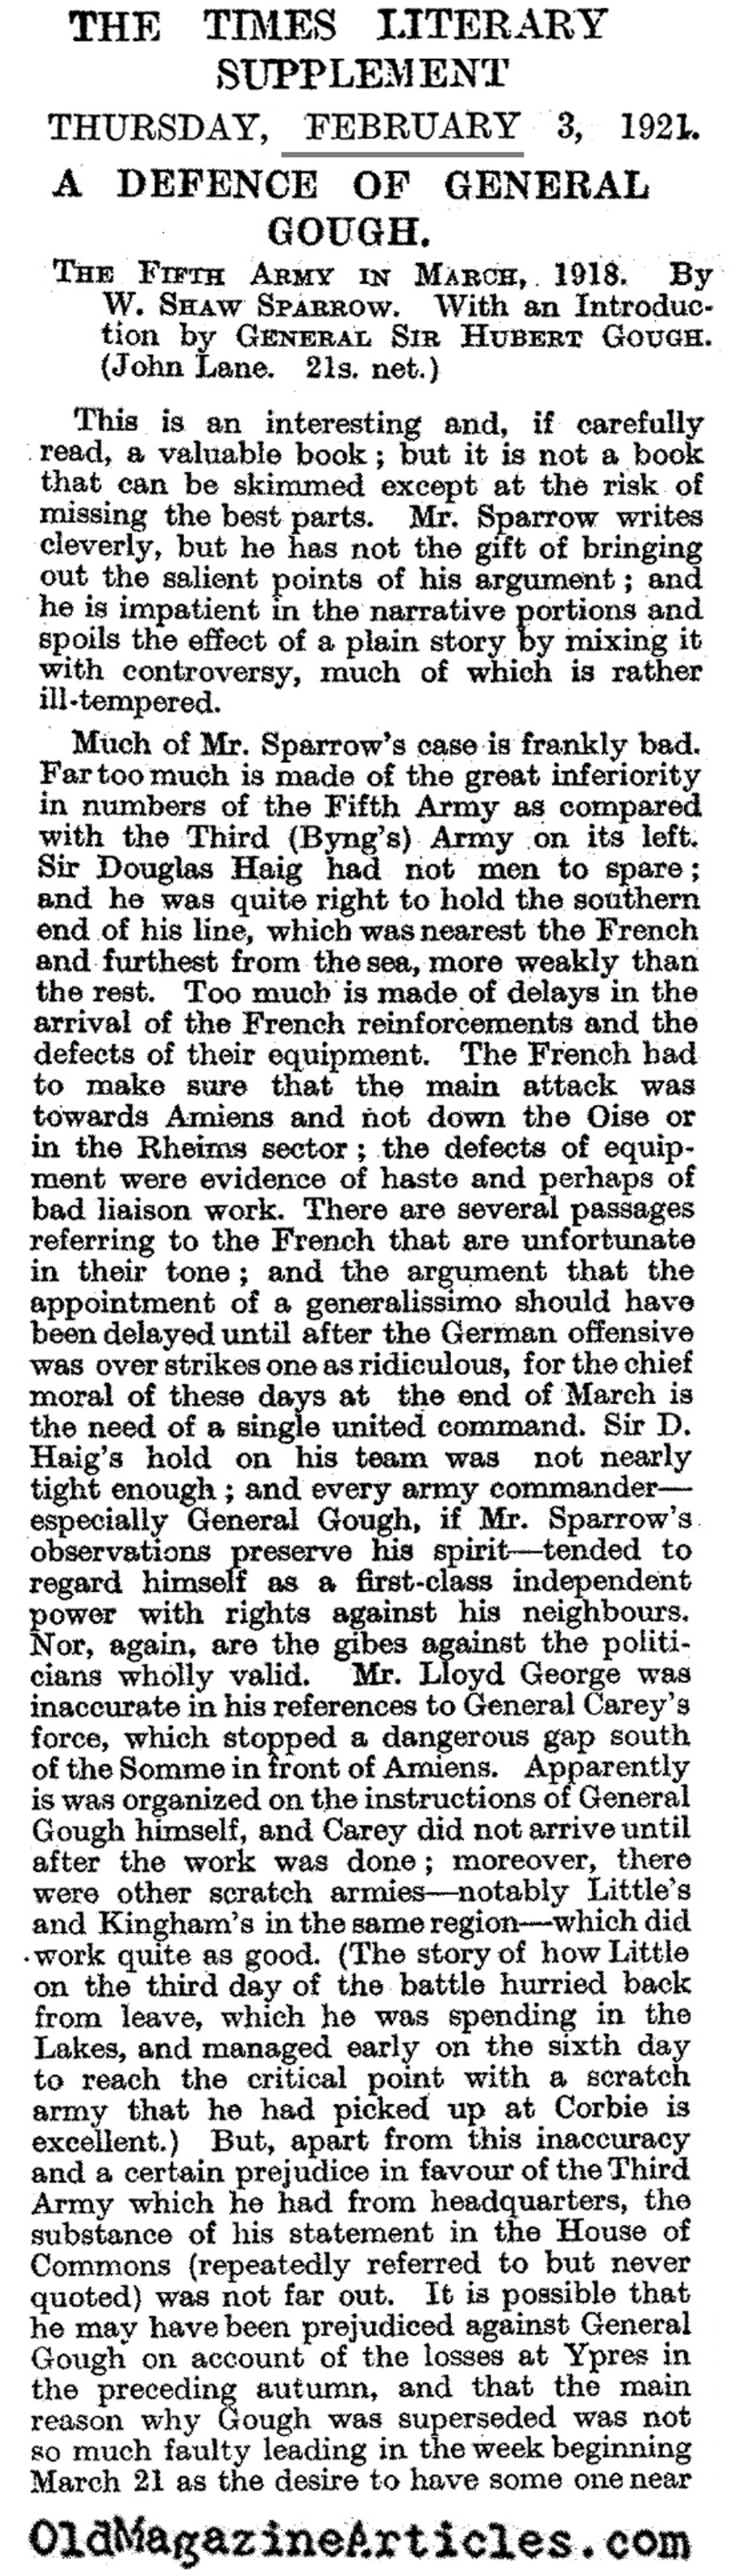 General Herbert Gough and the Collapse of the Fifth Army  (Times Literary Supplement, 1921)